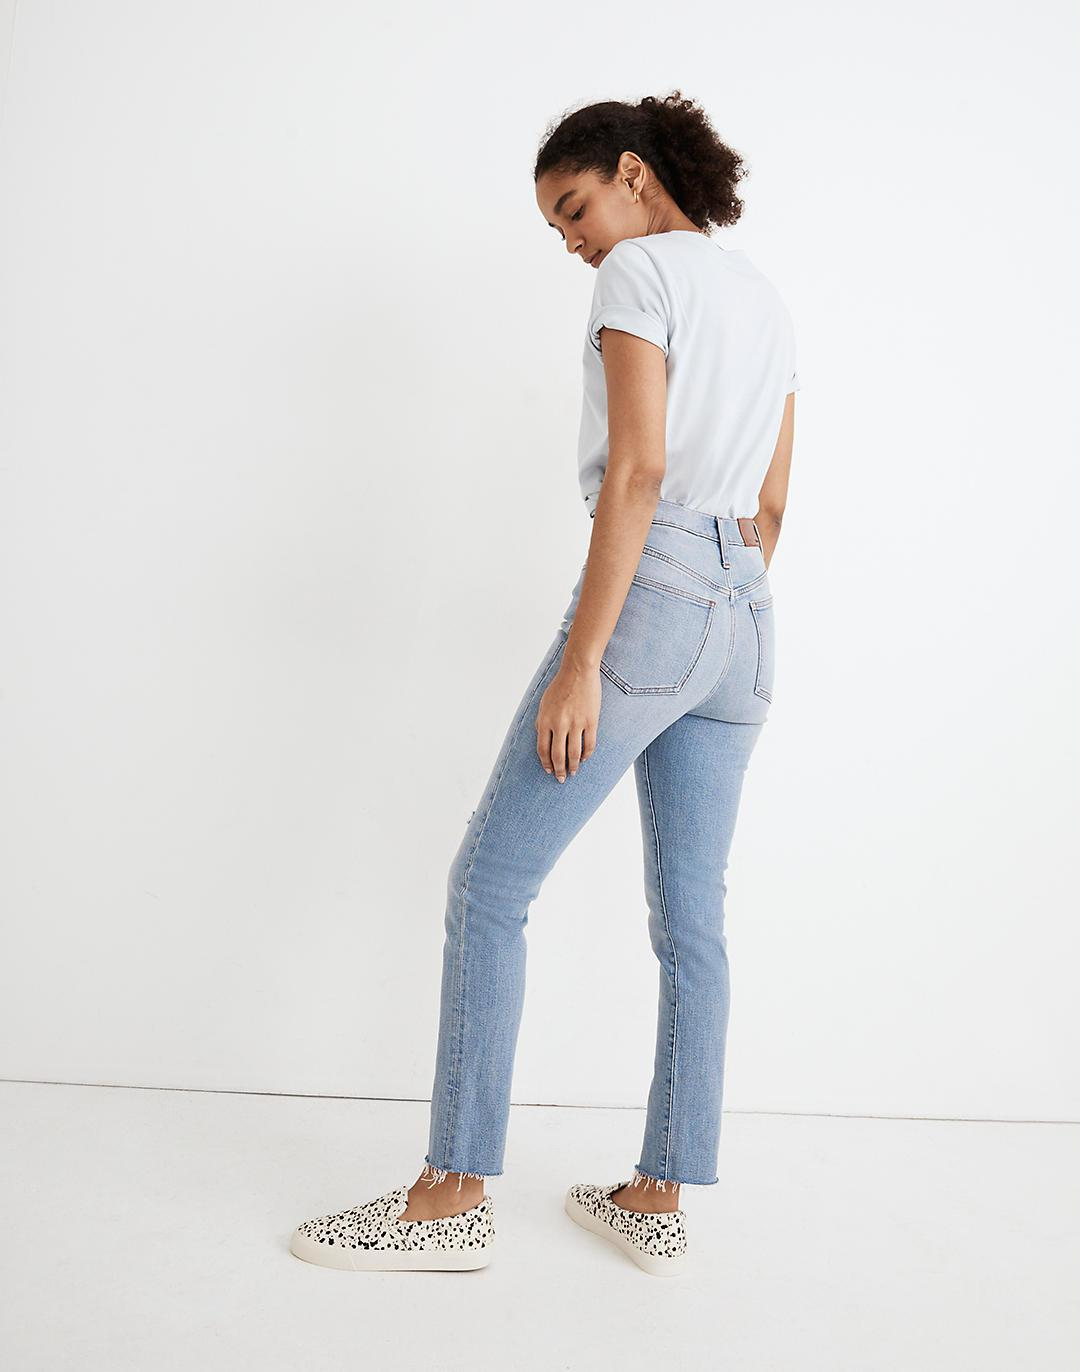 The Tall Perfect Vintage Jean in Coffey Wash: Worn-In Edition 2